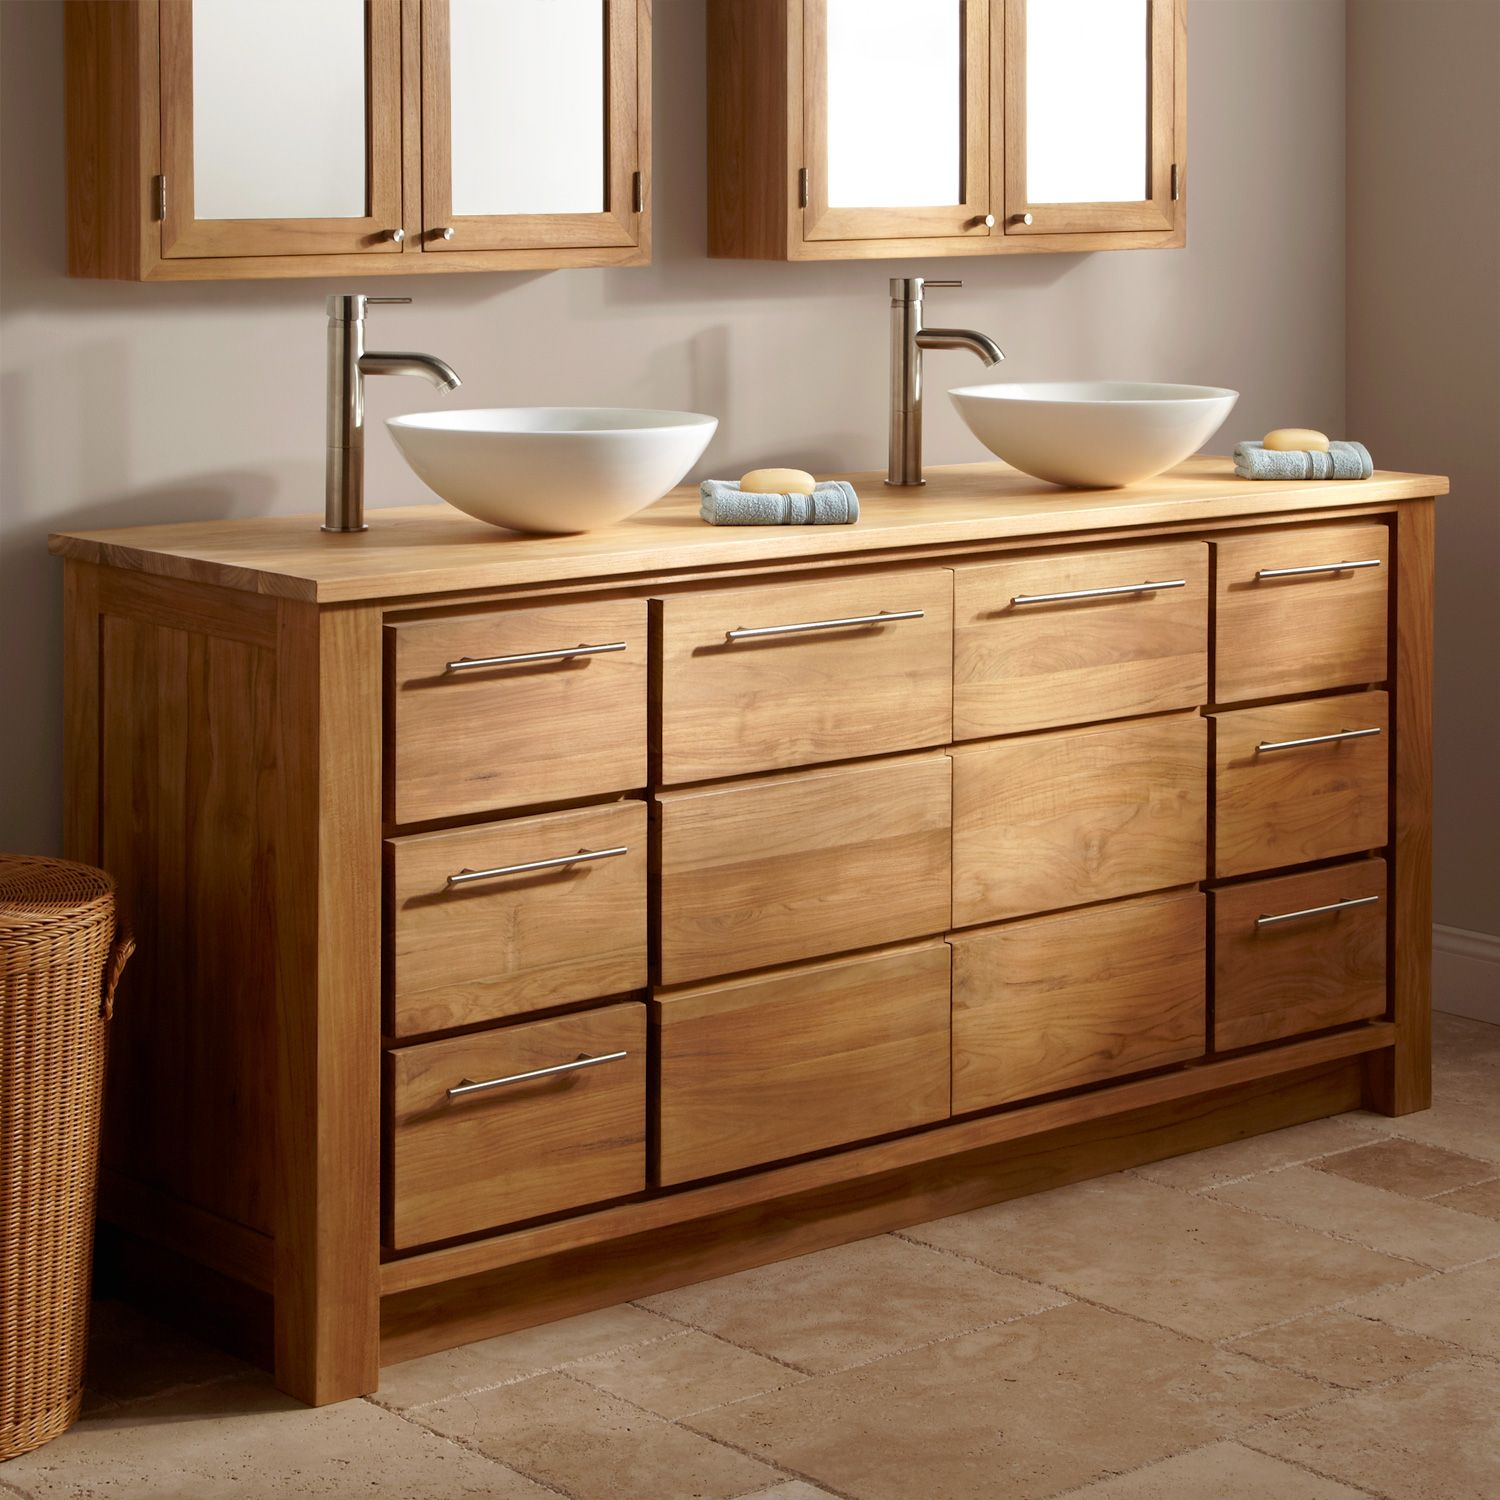 bathroom vanity without sink top. 72  Venica Teak Double Vanity Cabinet with Top for Vessel Sinks